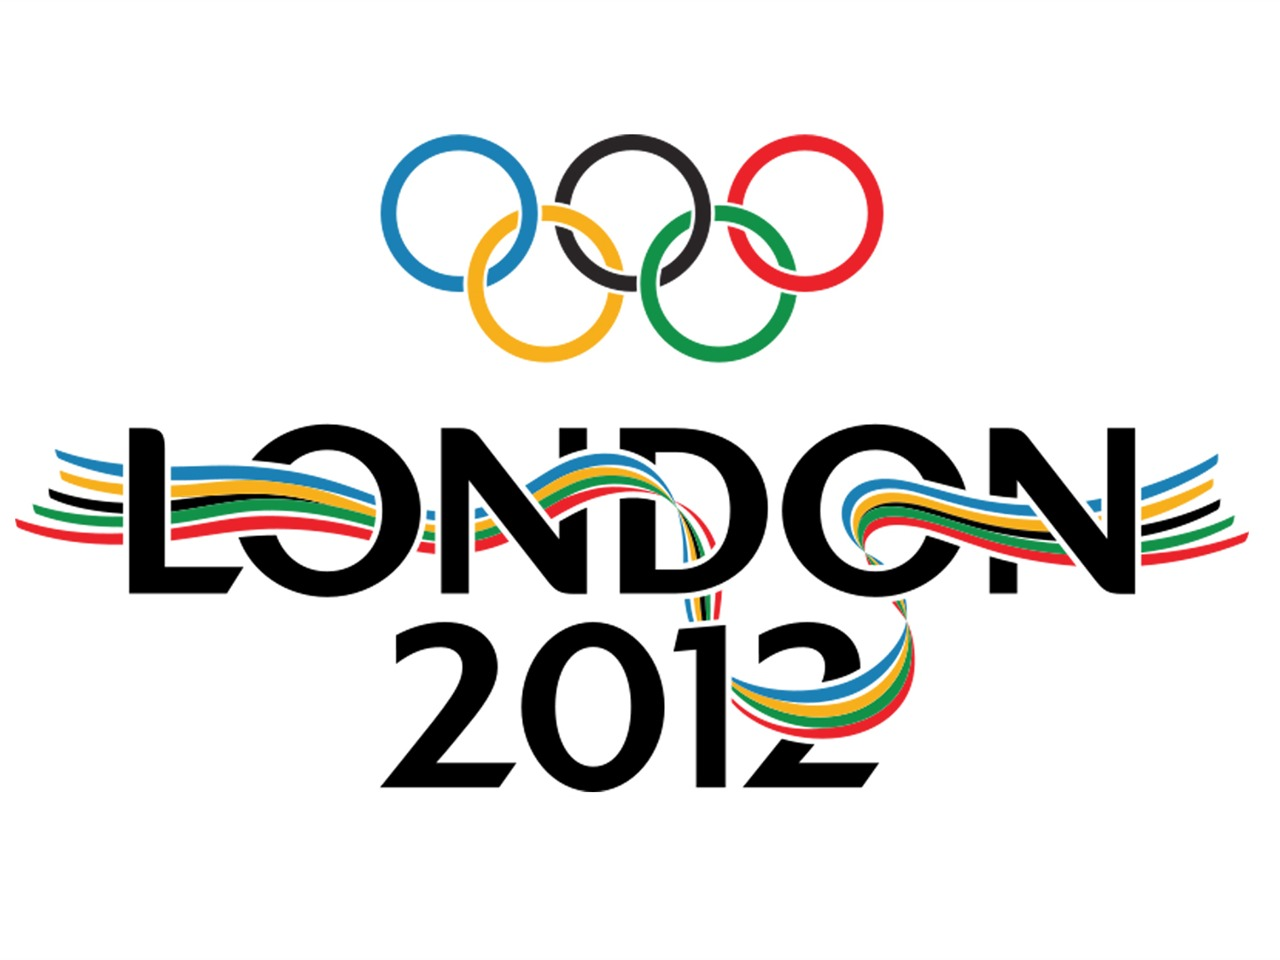 London-London 2012 Olympic Games Wallpaper-1280x960 ...